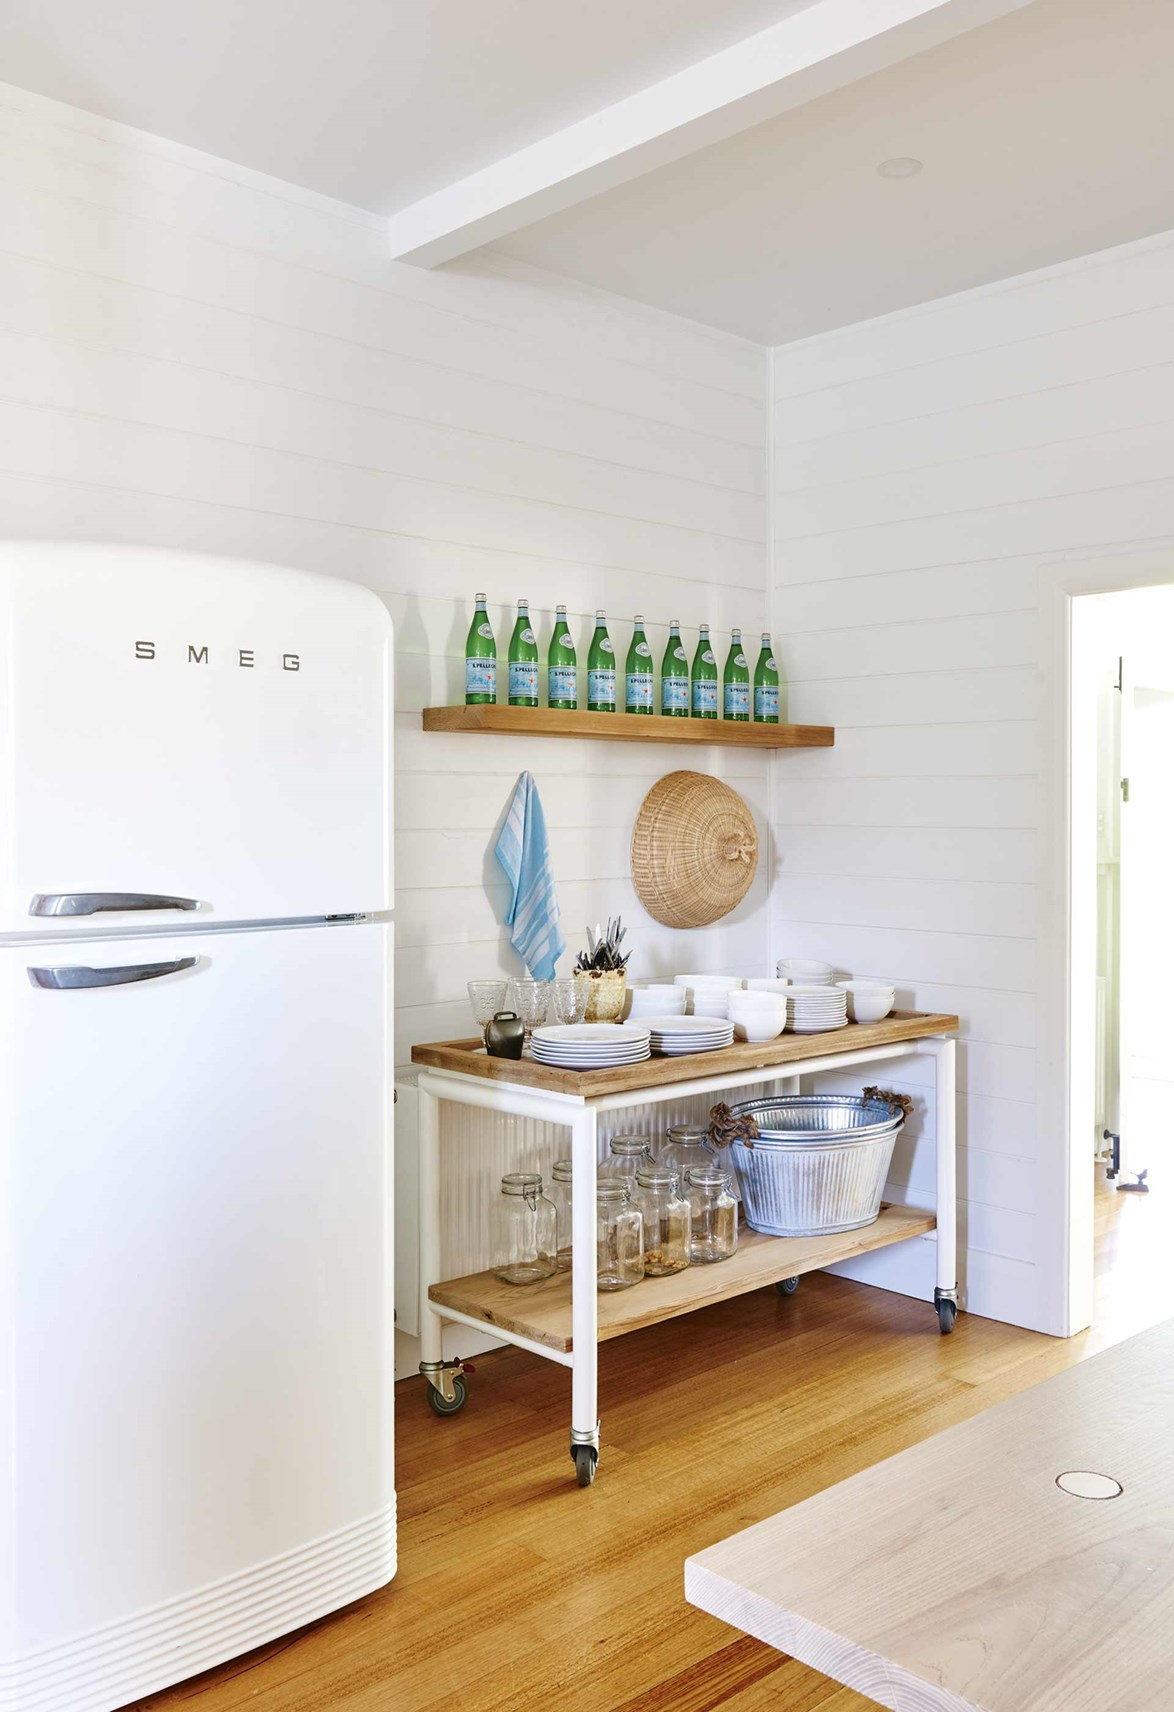 "<p>**PORTABLE SHELVING**<P> <p> Pinched for space? Then a portable kitchen island shelf or kitchen trolley could be the solution. This idea, which has been executed to a T in this renovated [Californian bungalow in Barwon Heads](https://www.homestolove.com.au/californian-bungalow-barwon-heads-17909|target=""_blank"") works especially well for those who love to entertain frequently. Having a barbeque? Just wheel the trolley out to the verandah. There's no need to take multiple trips to the kitchen for more cups, cutlery and plates.<p> <p>*Photo: Nikole Ramsay / Story: Inside Out*<p>"